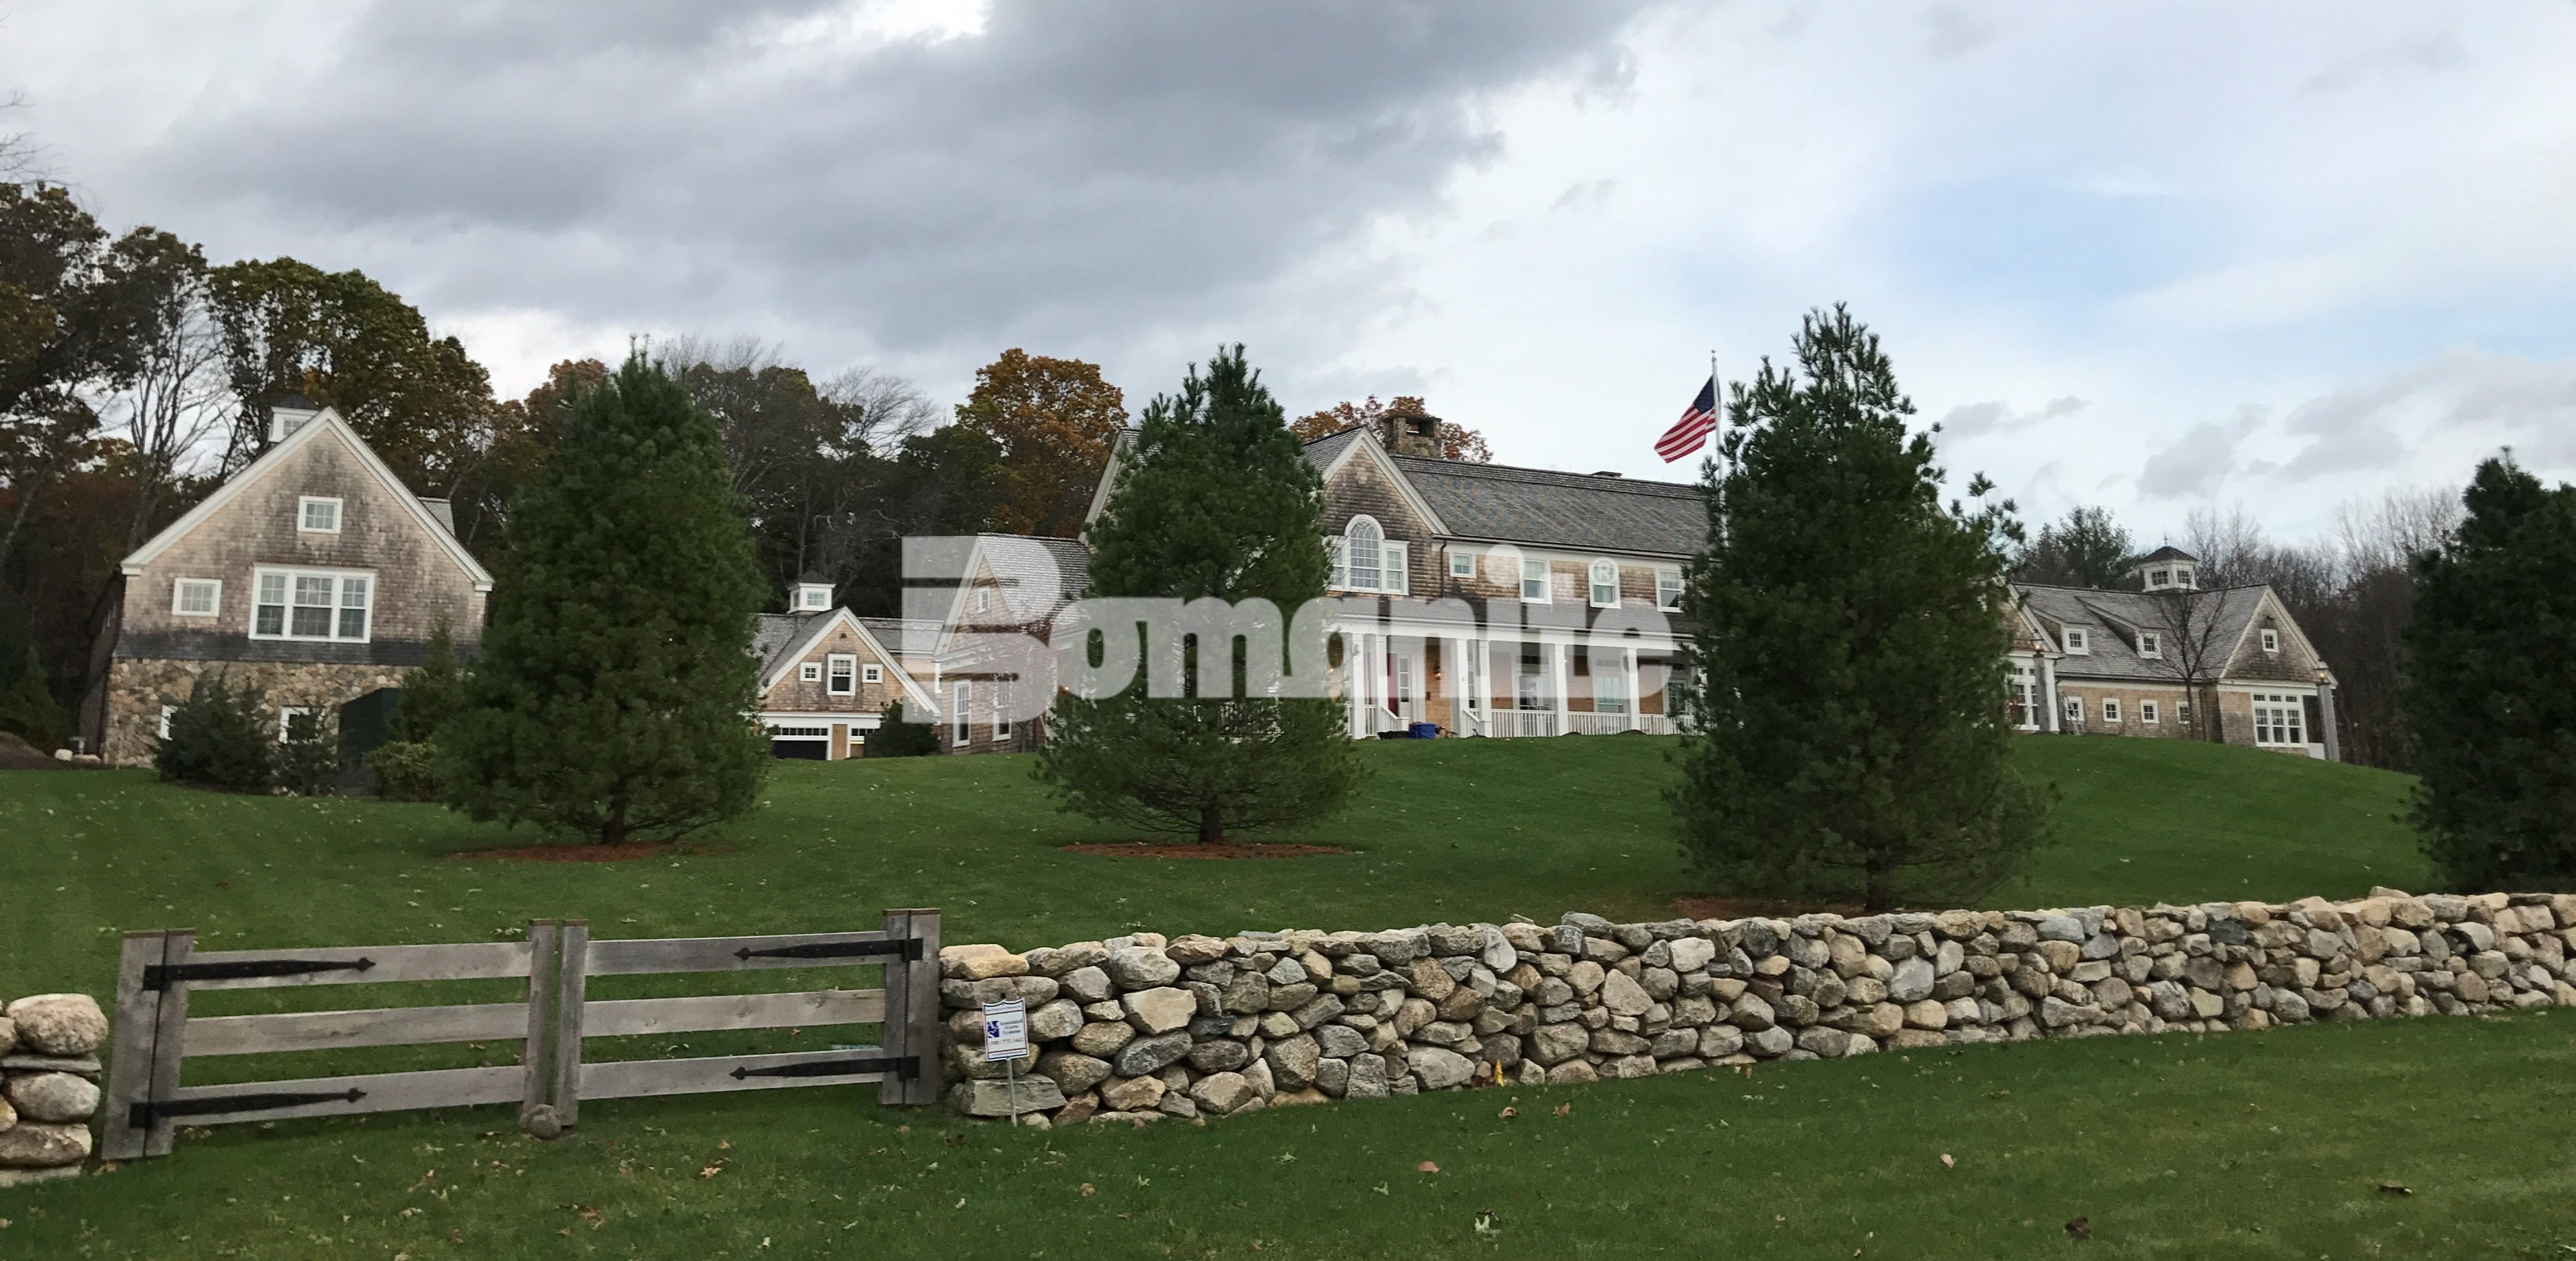 Essex county residential estate overview during the installation of upgrades by Premier Concrete Construction of Bomanite Grasscrete and Bomanite Toppings decorative concrete using Bomanite Boradcast Flake.